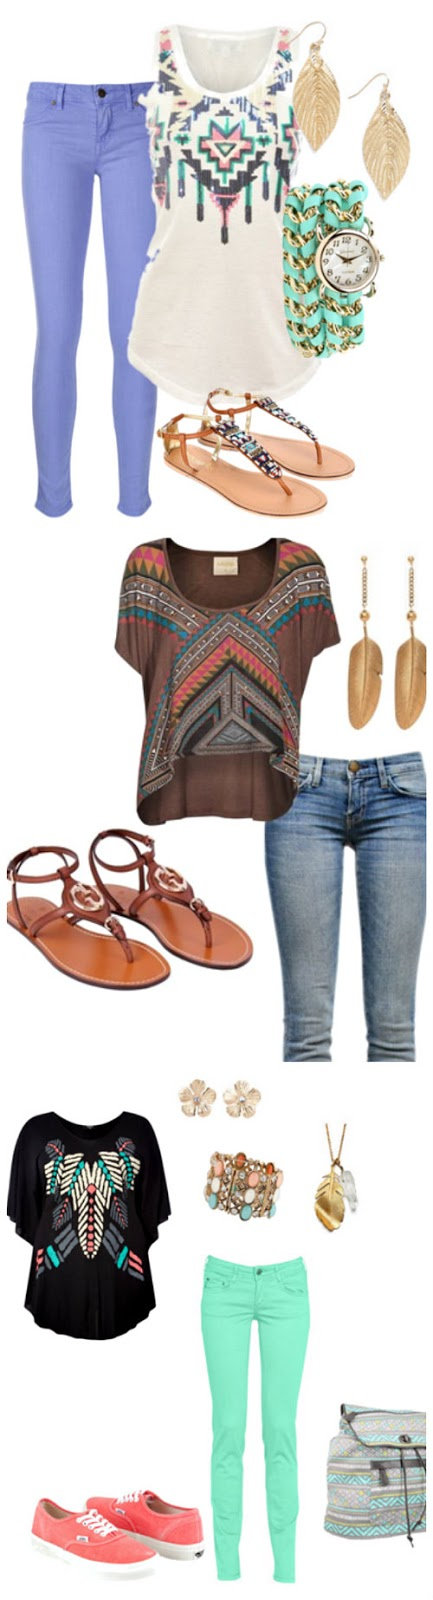 Aztec print outfits for spring. Love the pastel colors! Click through for sources. www.craftingintherain.com